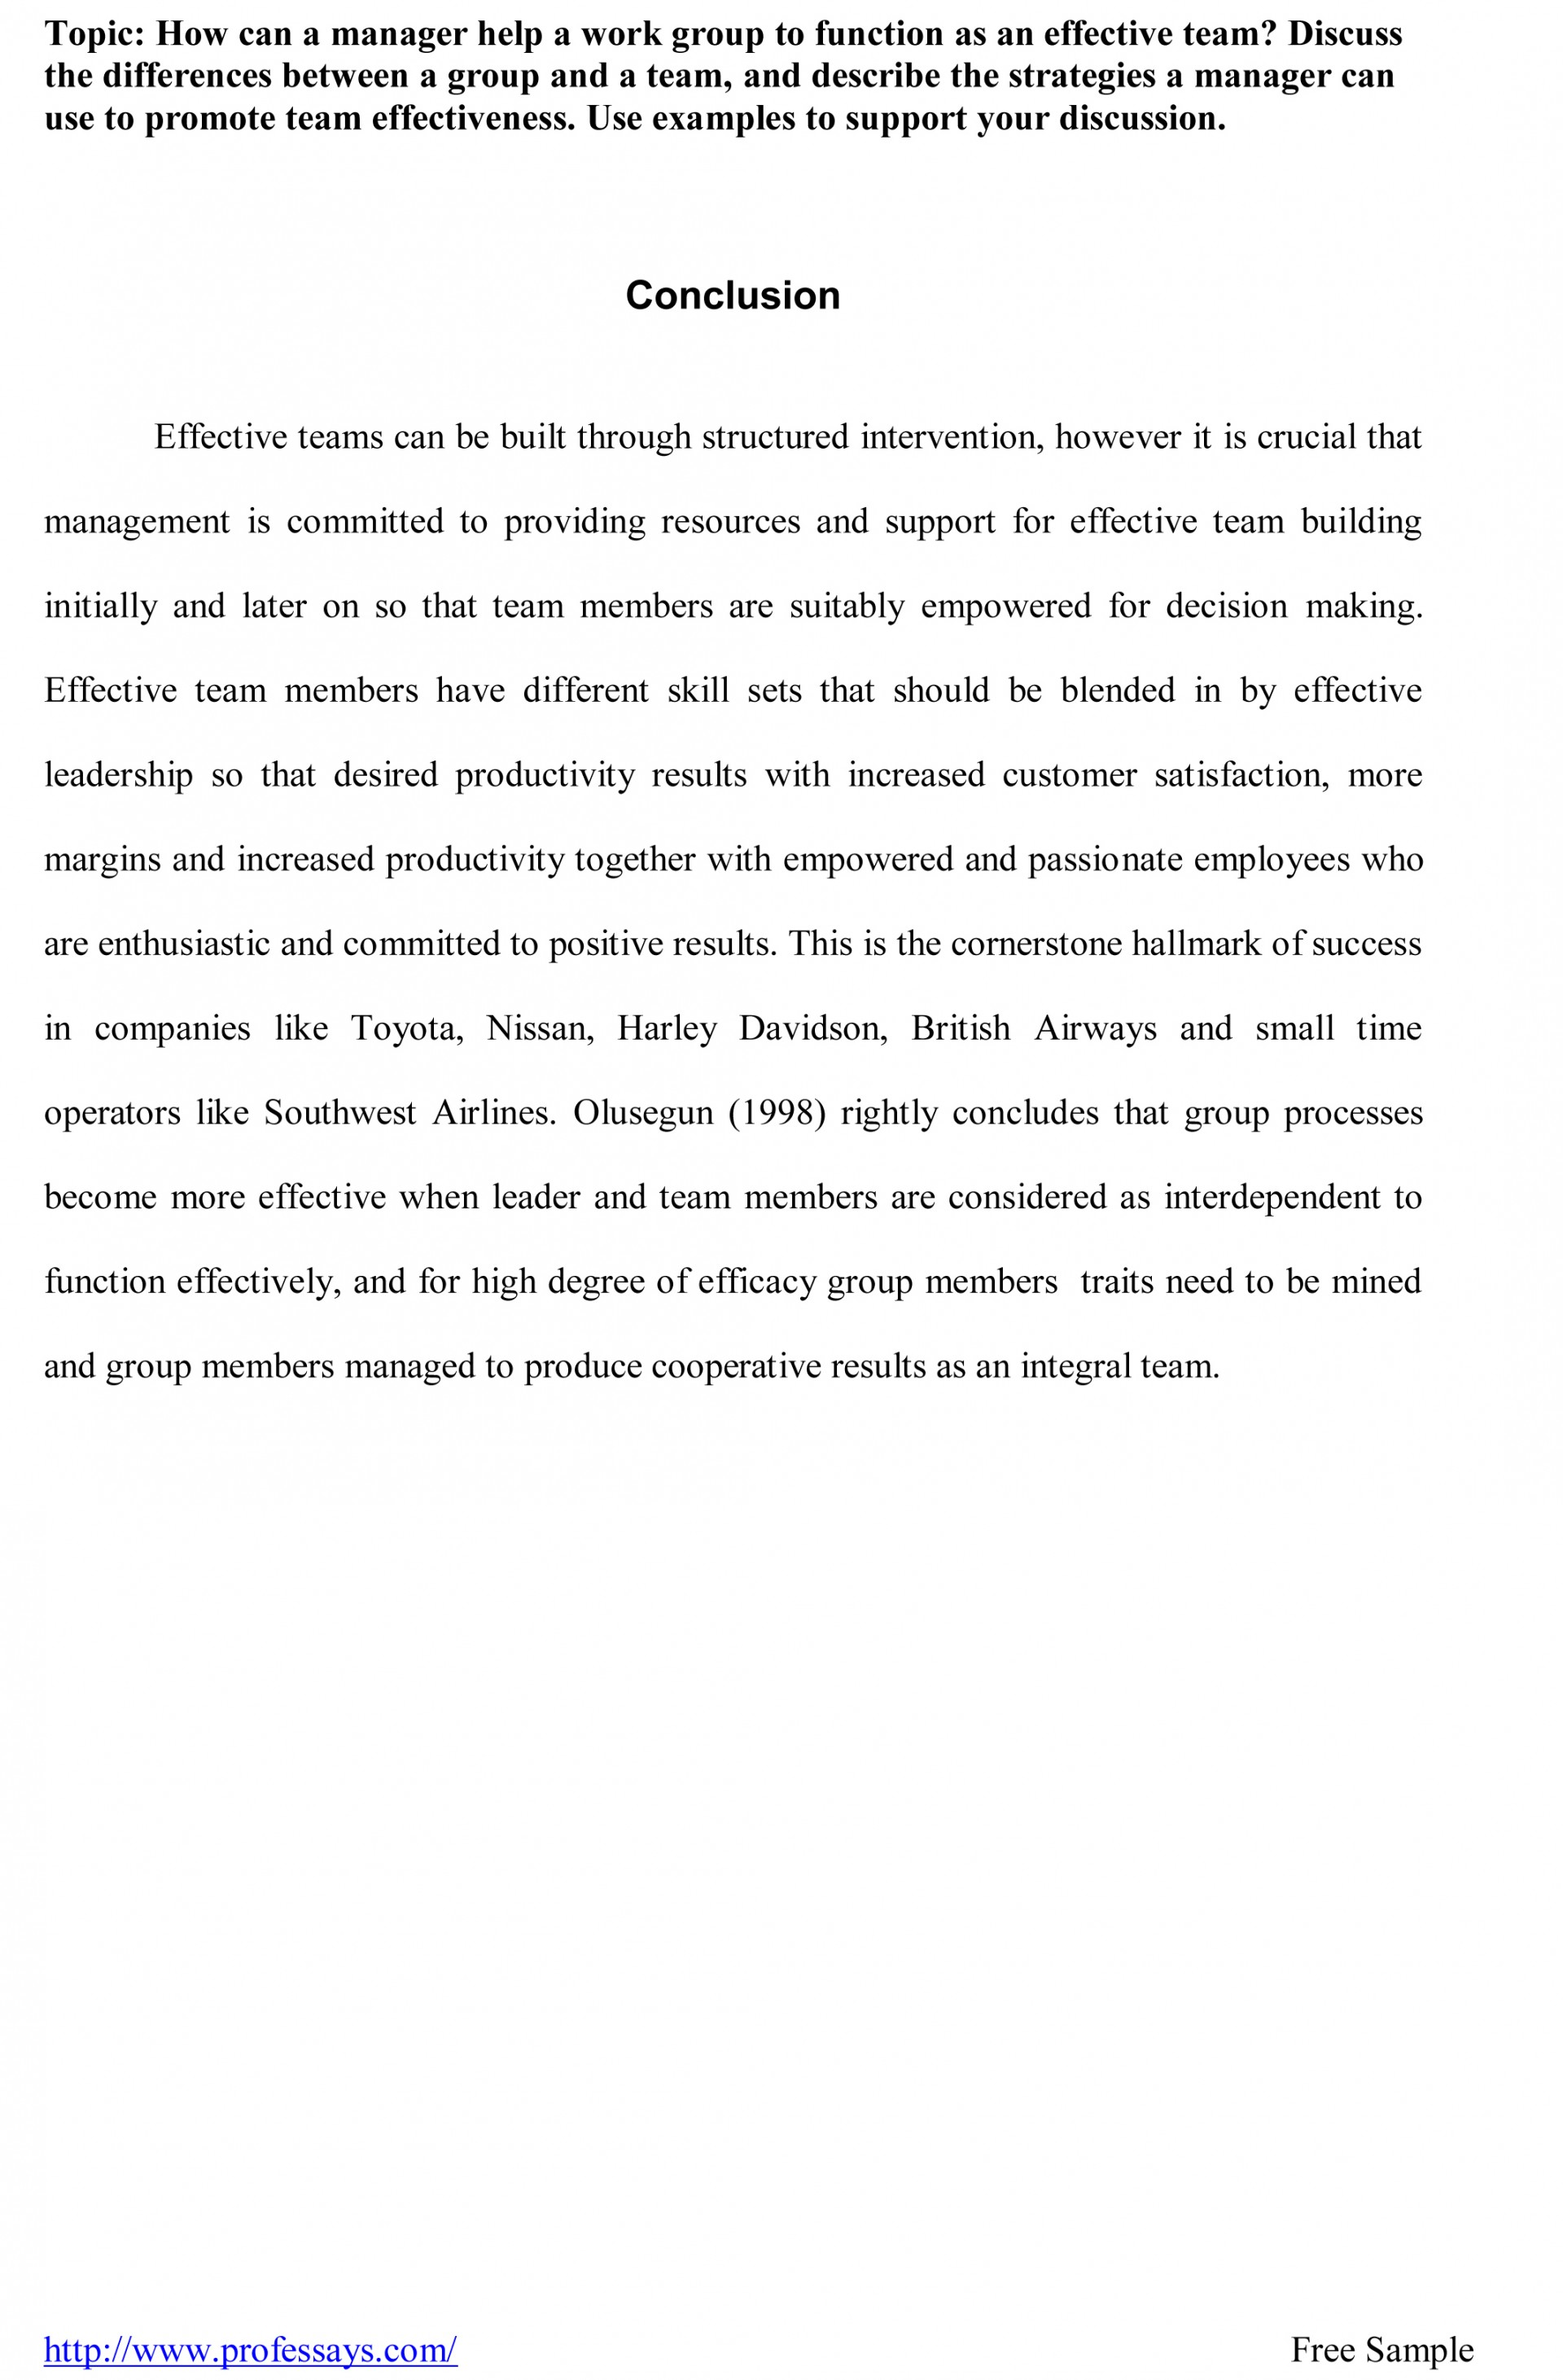 007 Research Paper Help Writing Papers Conclusion Sample For Outstanding My 1920